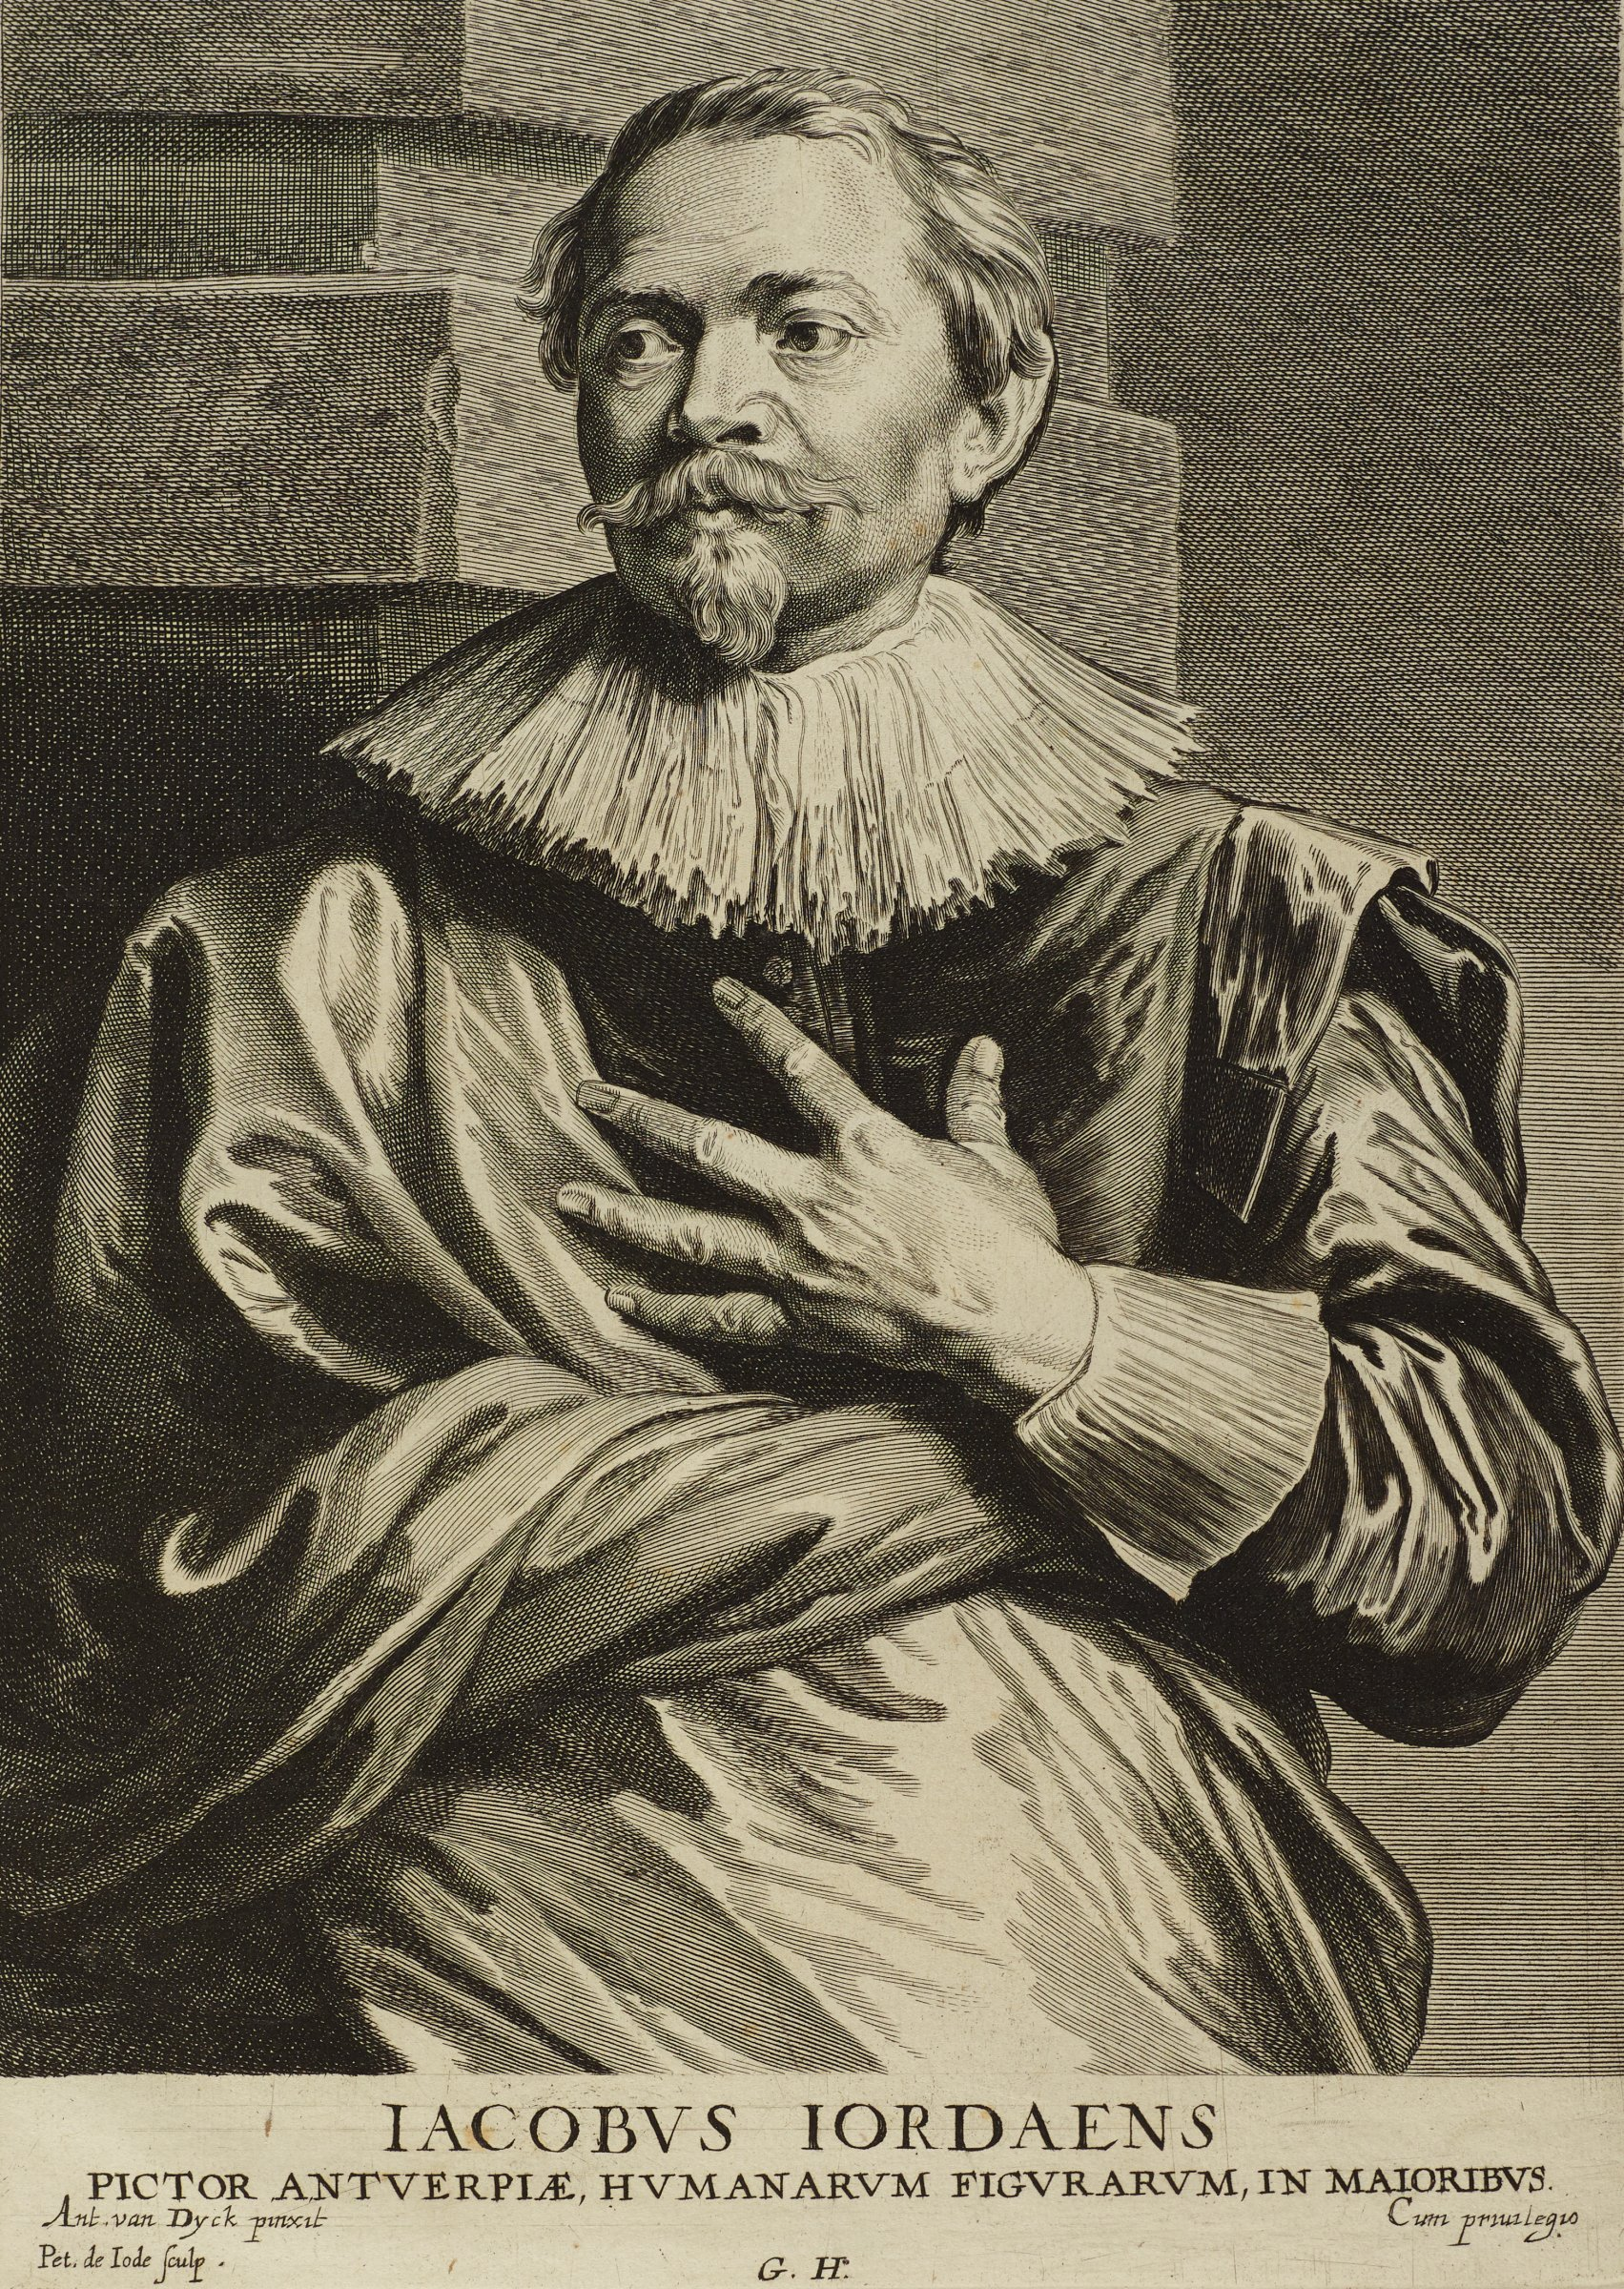 Jordaens, a painter, stands in front of a stone structure dressed in fine clothing. He holds his left hand to his chest and looks slightly to the proper right. This image is from the Gillis Hendricx edition of the Iconography (Icones Principum Virorum Doctorum, Pictorum Chalcographorum Statuorum nec non Amatorum Pictoriae Artis Numero Centum), 1632-44.